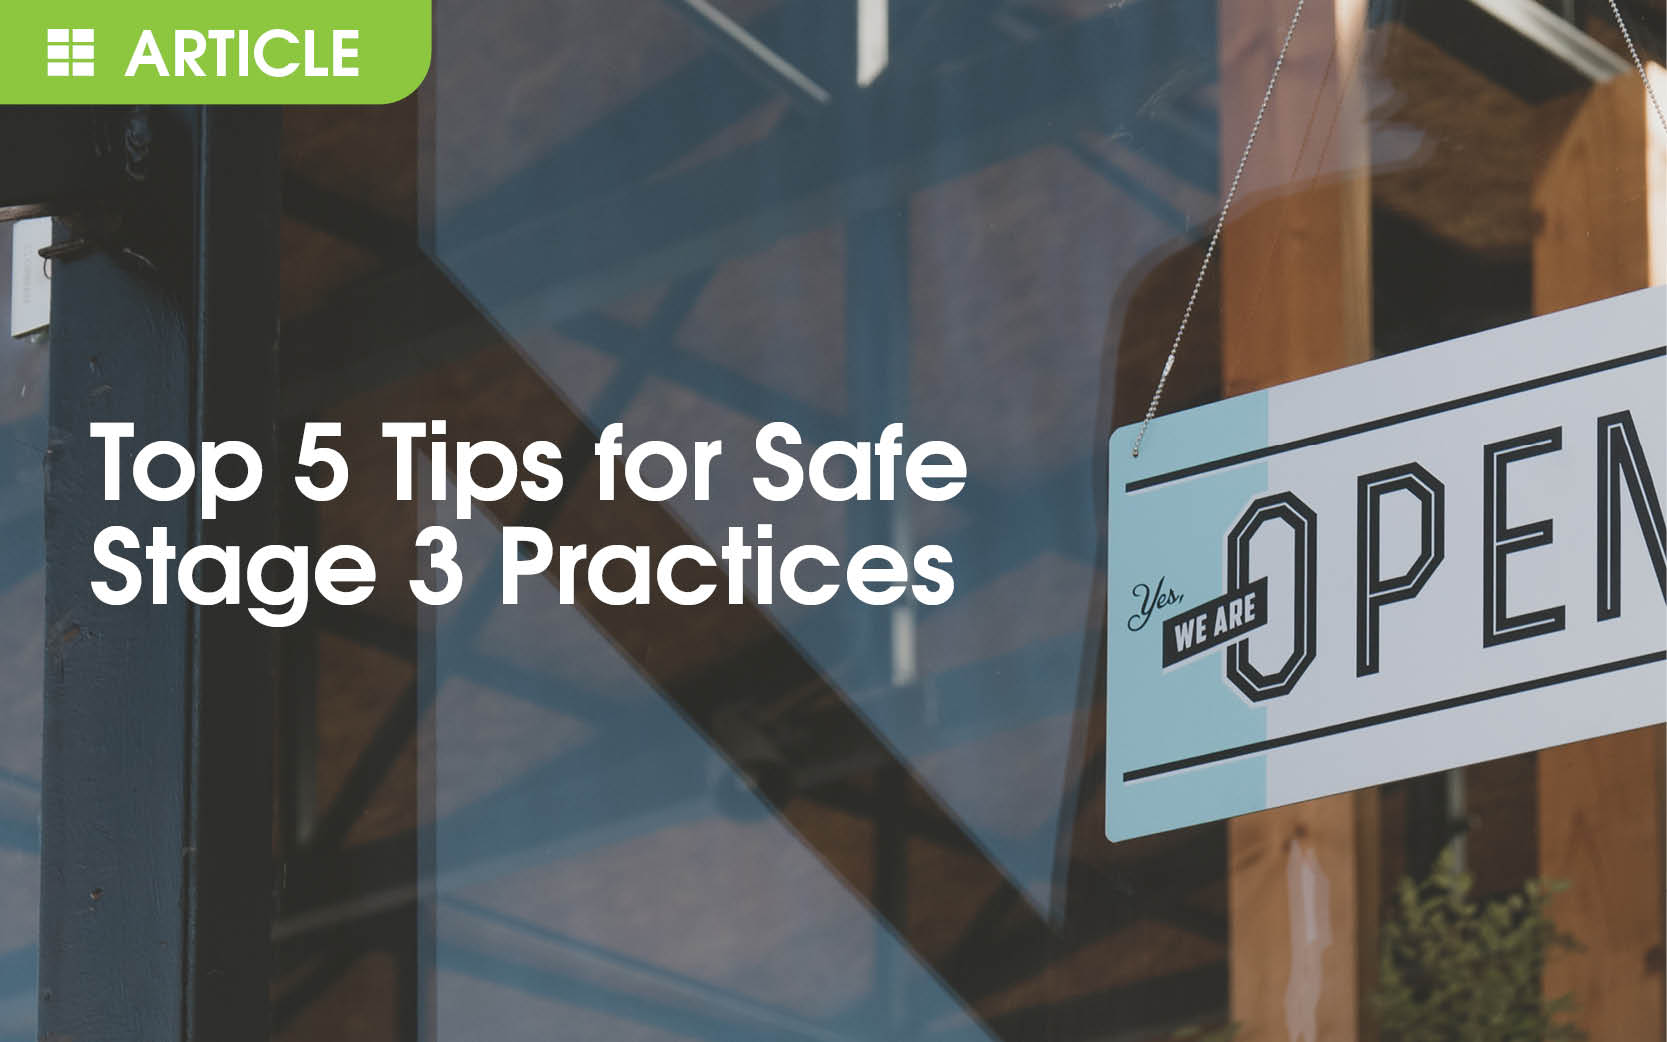 Top 5 tips for safe practices as we enter Stage 3 in Queensland